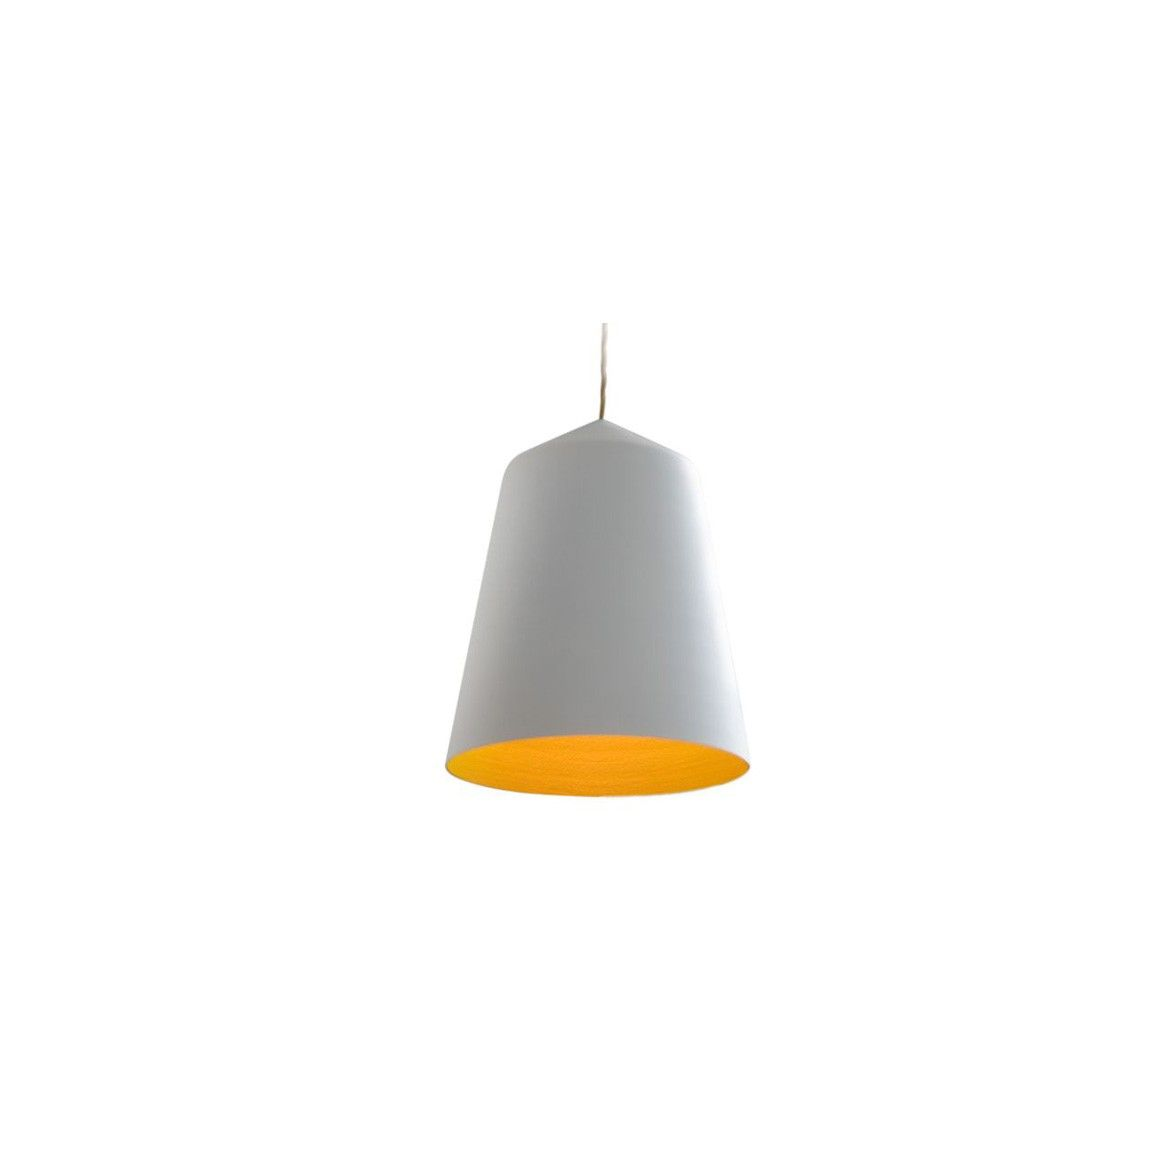 Circus Pendant Small  sc 1 st  Pinterest & Circus Pendant Small | Kitchen lighting ideas | Pinterest ... azcodes.com